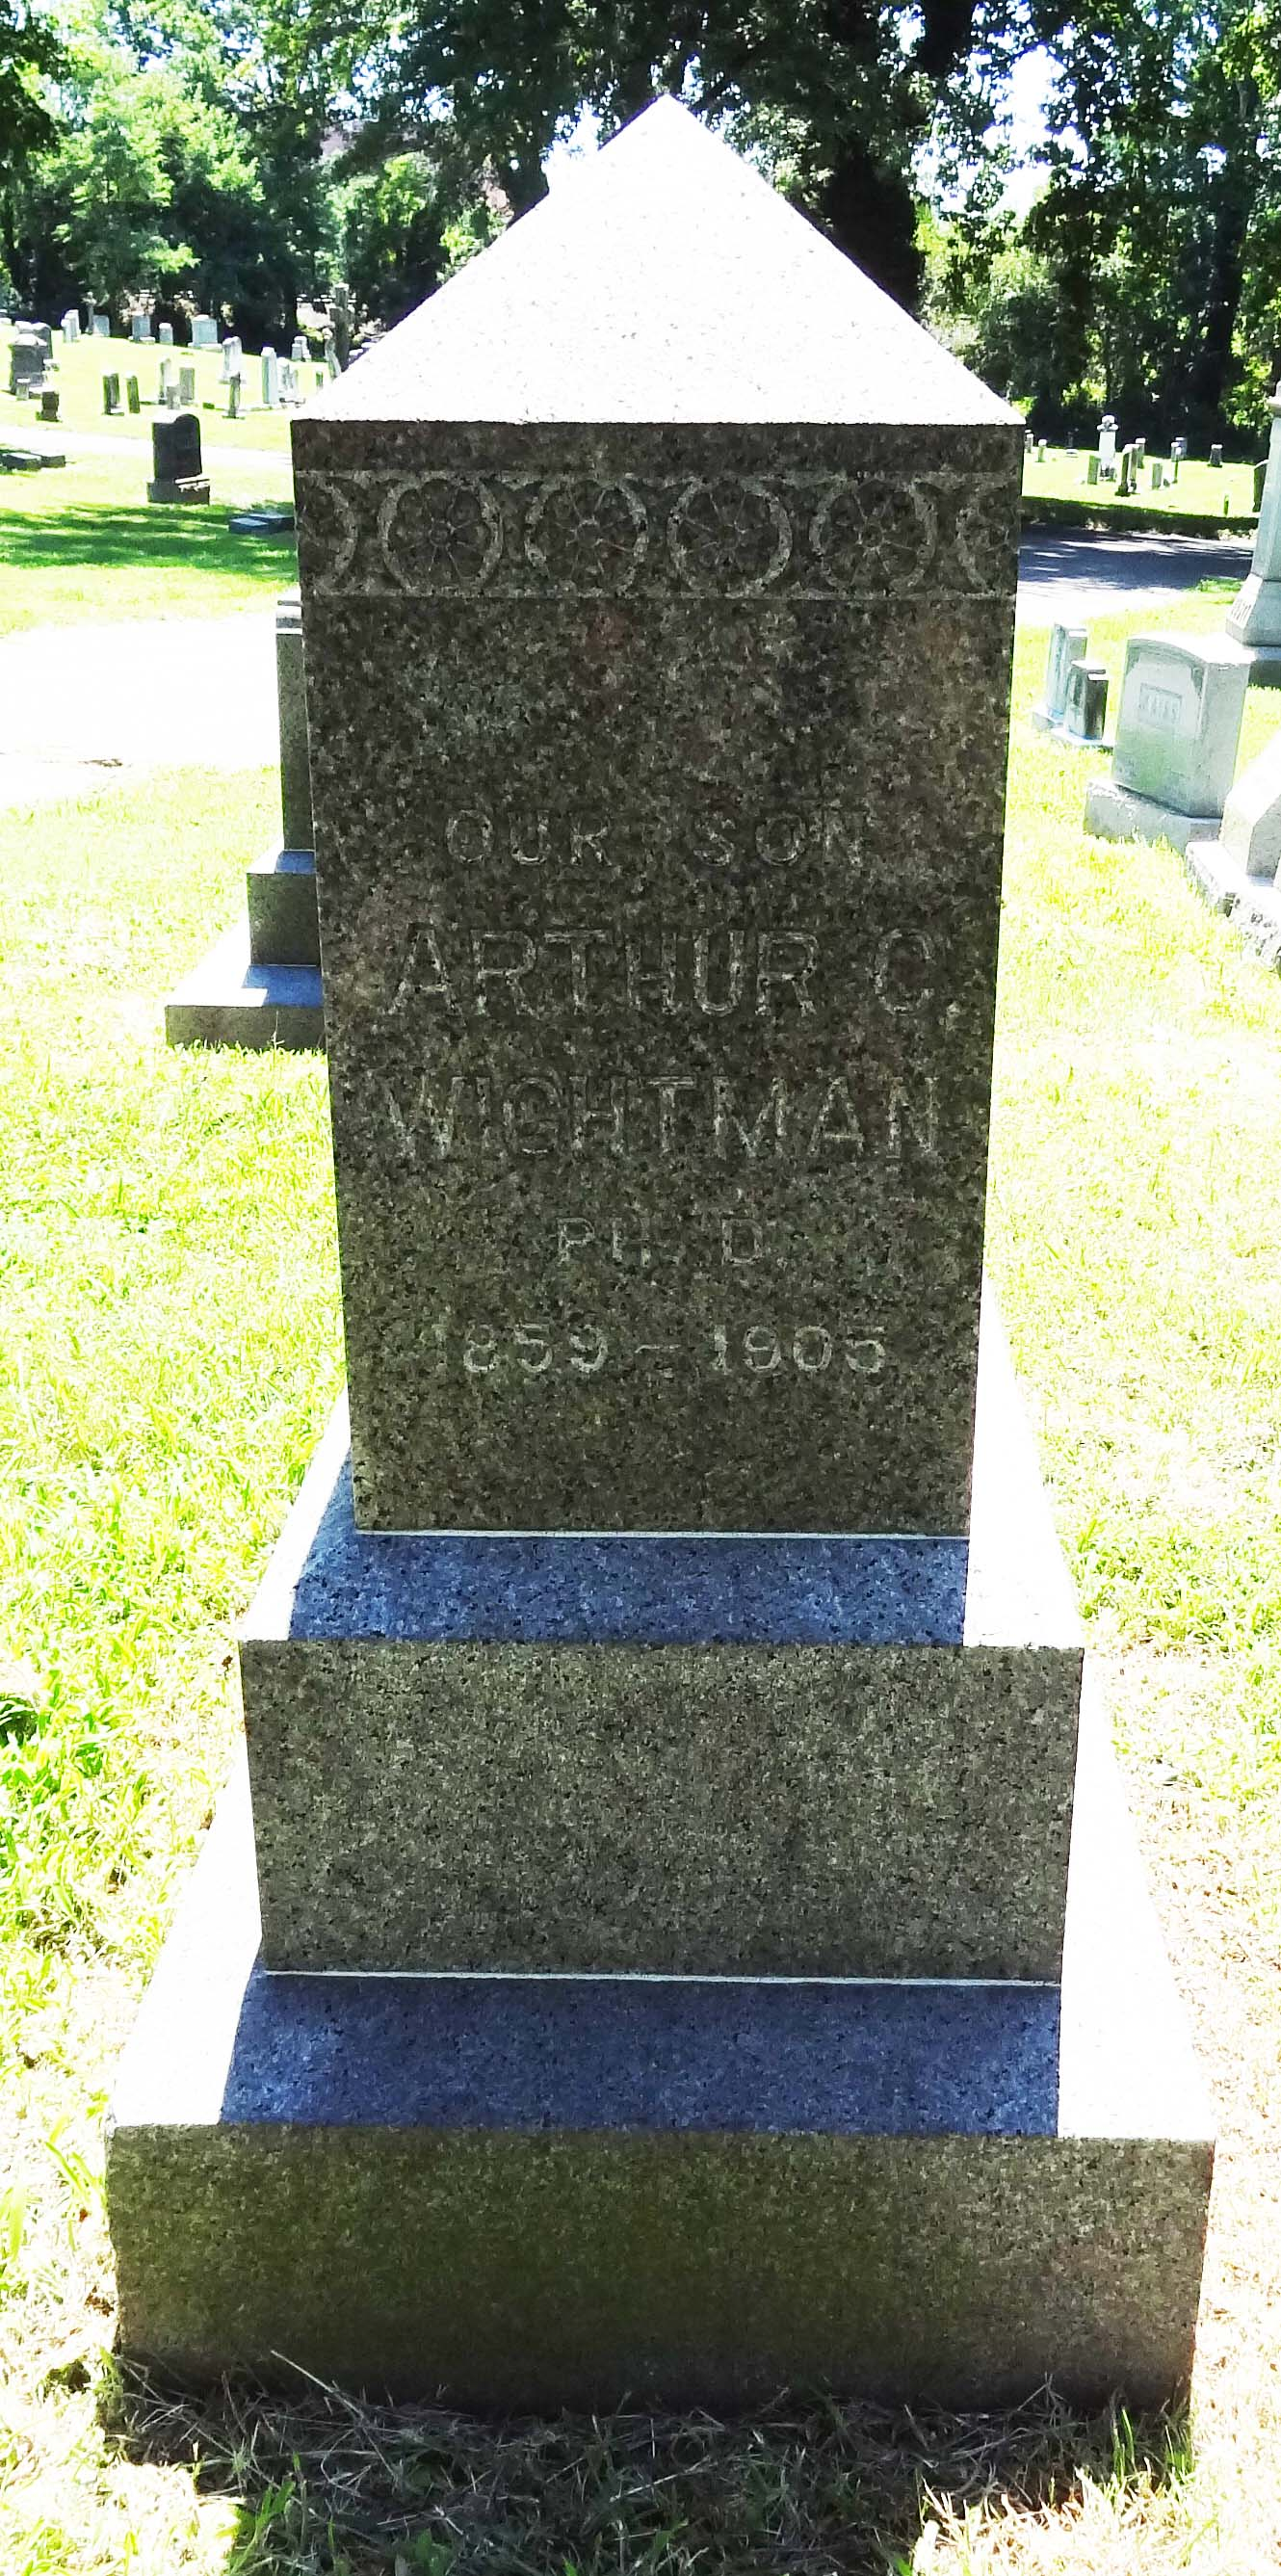 Dr Arthur Clarence Wightman